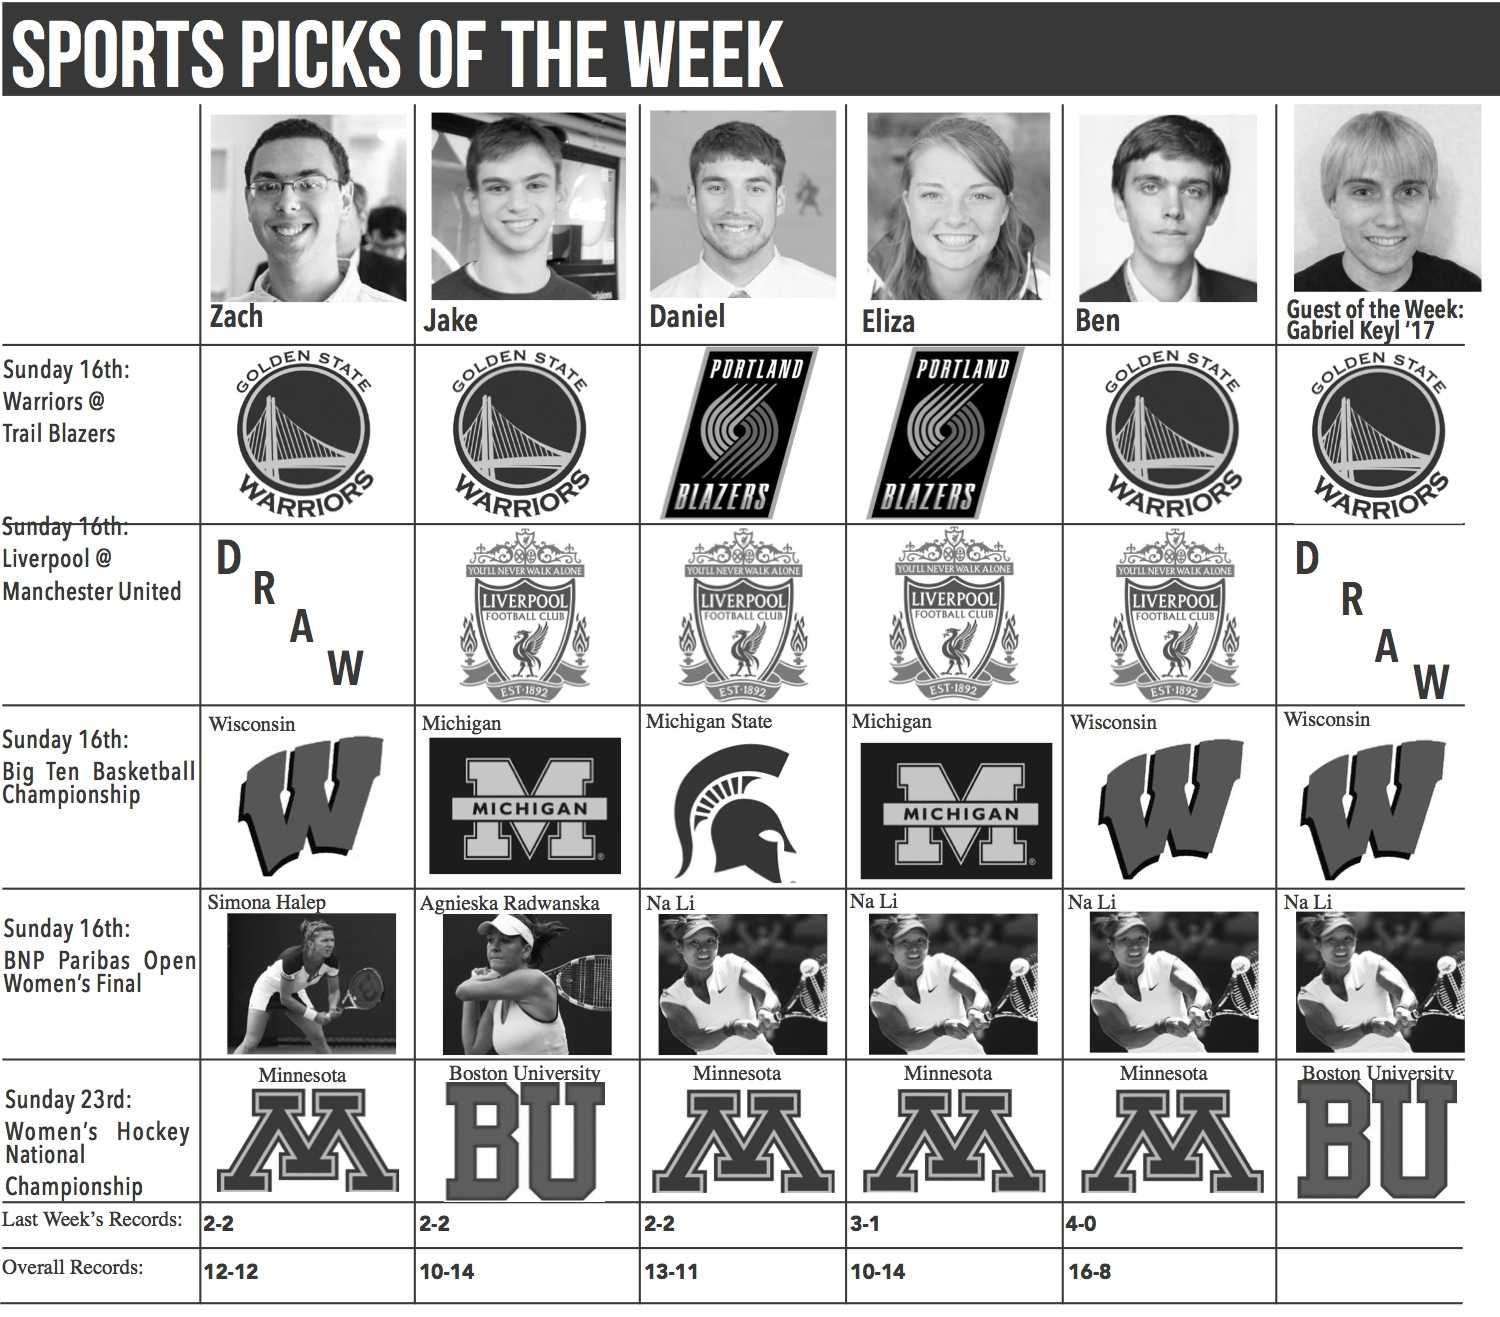 Sports Picks of the Week: 3/14/2014